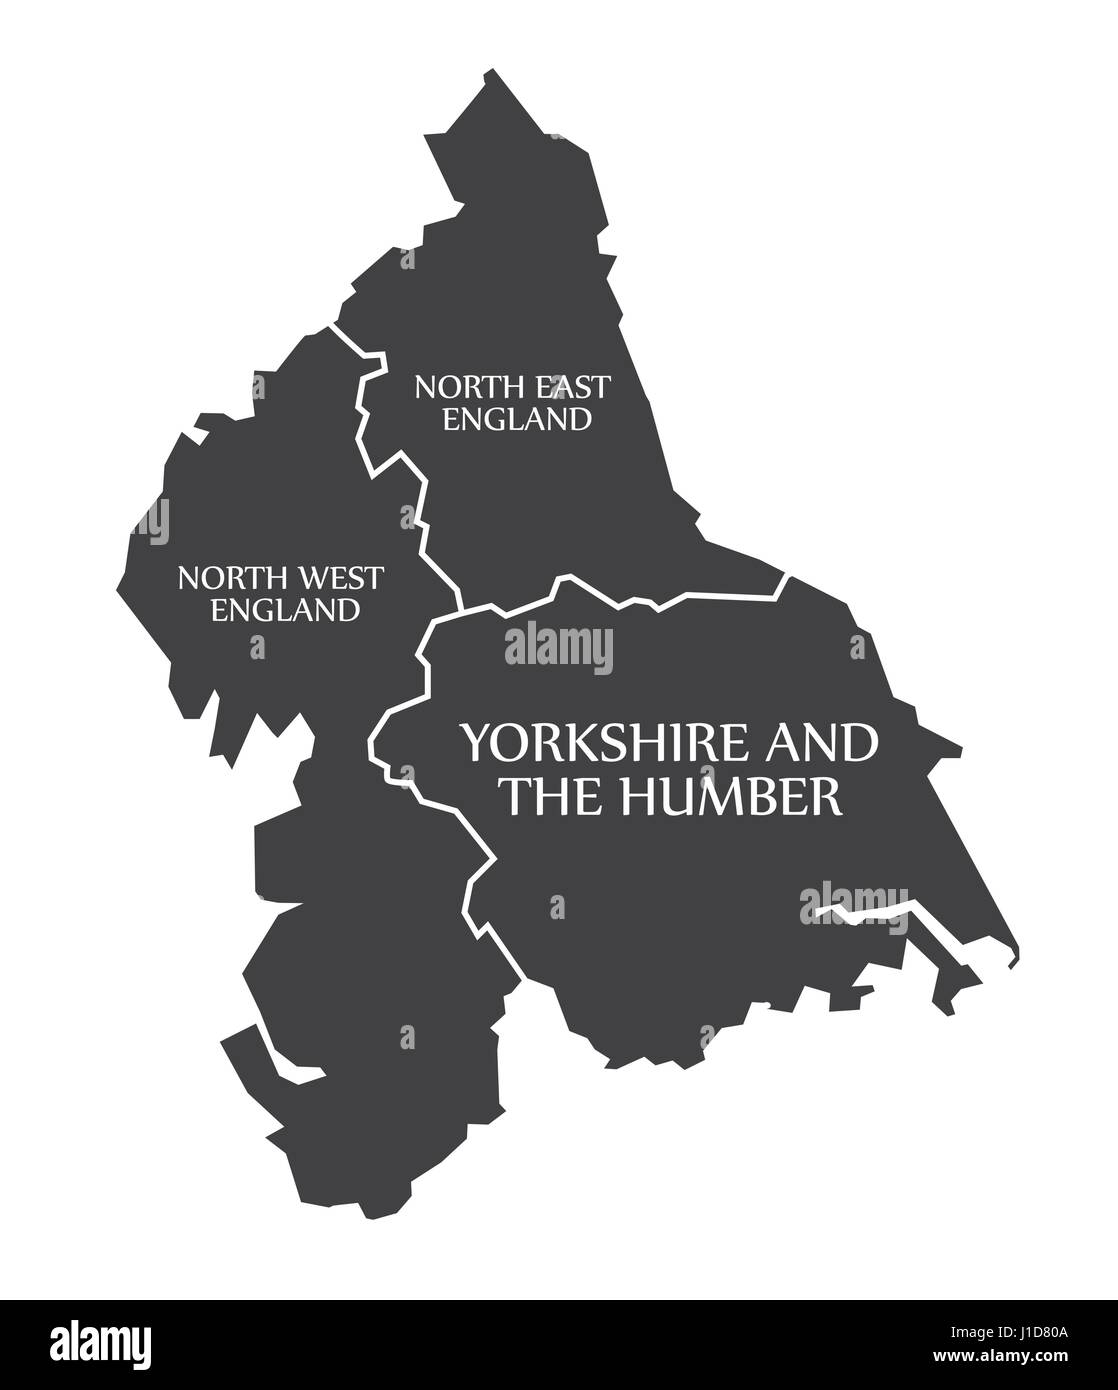 north east and north west england yorkshire and the humber map uk illustration